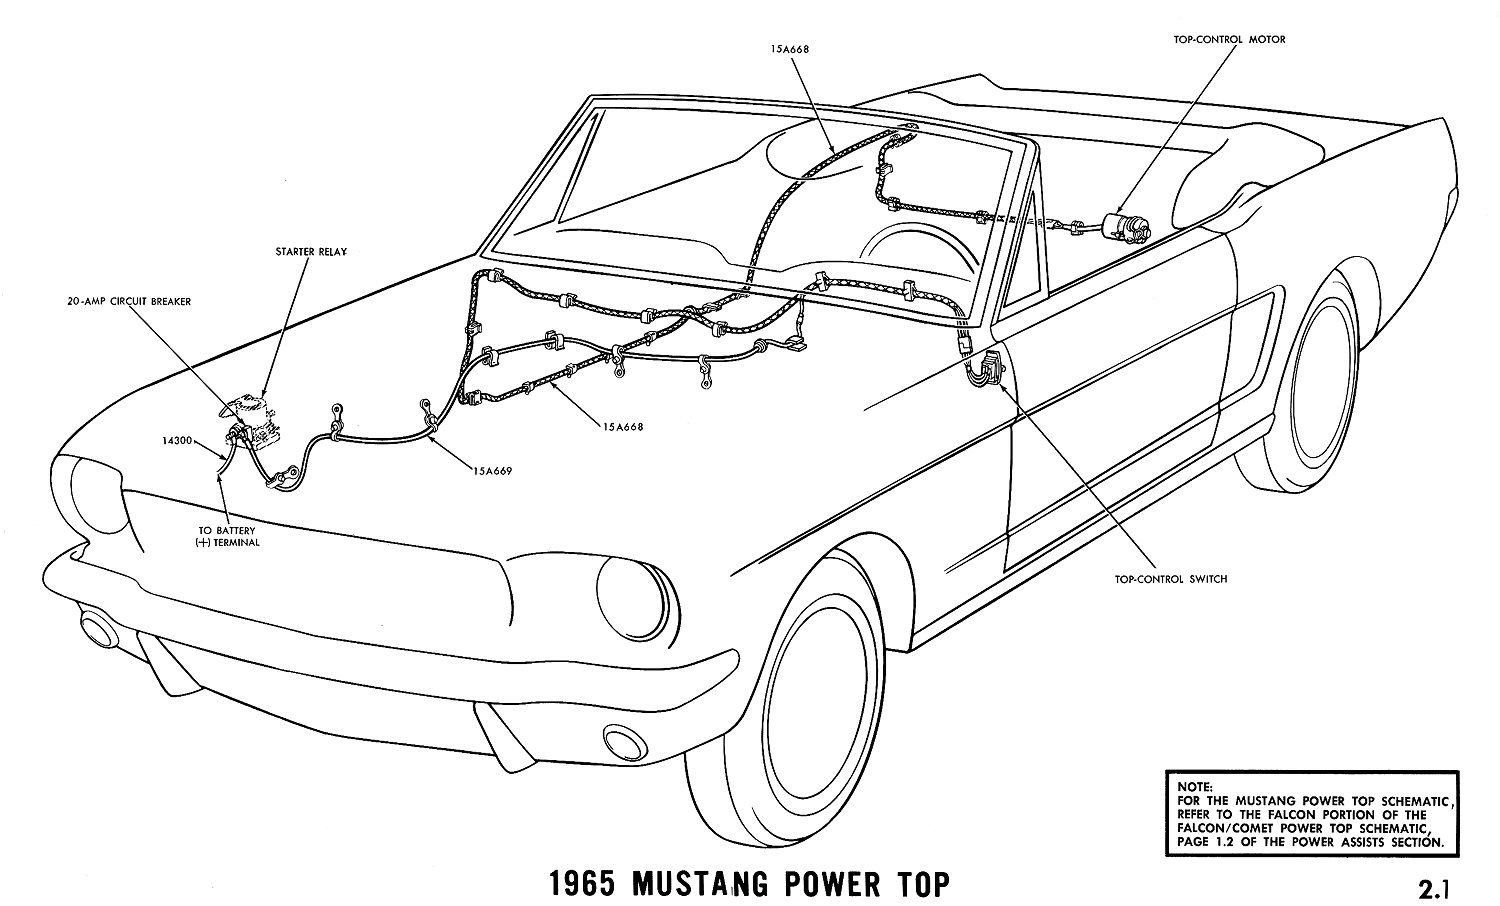 1965j 1965 mustang wiring diagrams average joe restoration 1966 mustang starter wiring diagram at alyssarenee.co